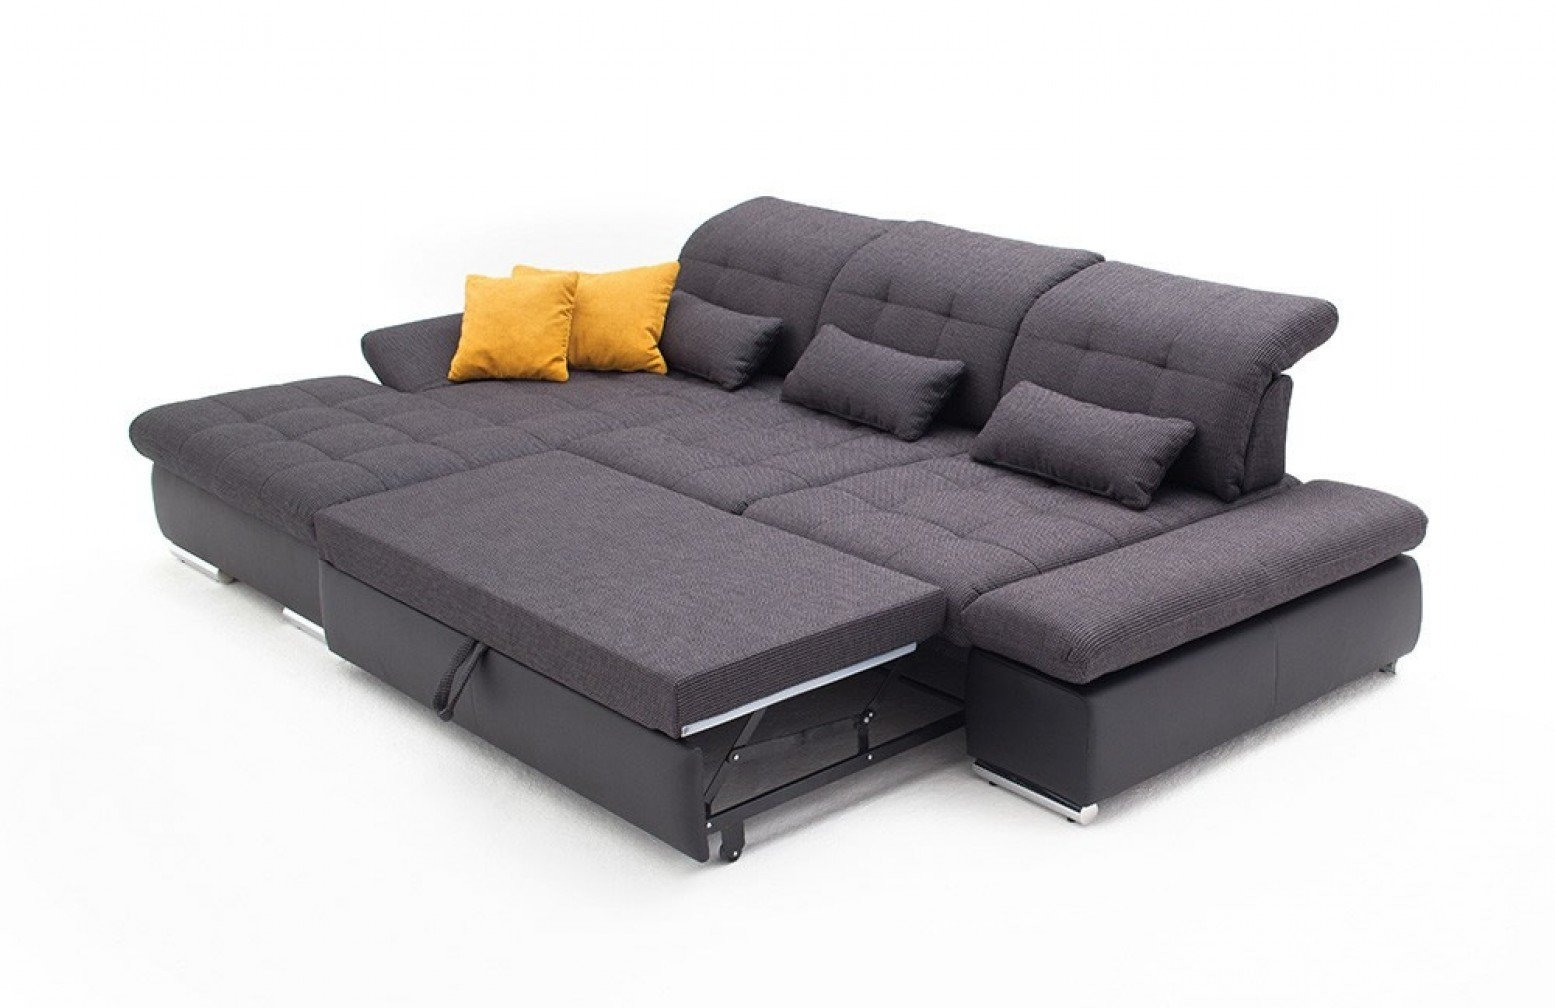 Sectional Sleeper Sofas – Home Decor 88 in Aspen 2 Piece Sectionals With Laf Chaise (Image 26 of 30)